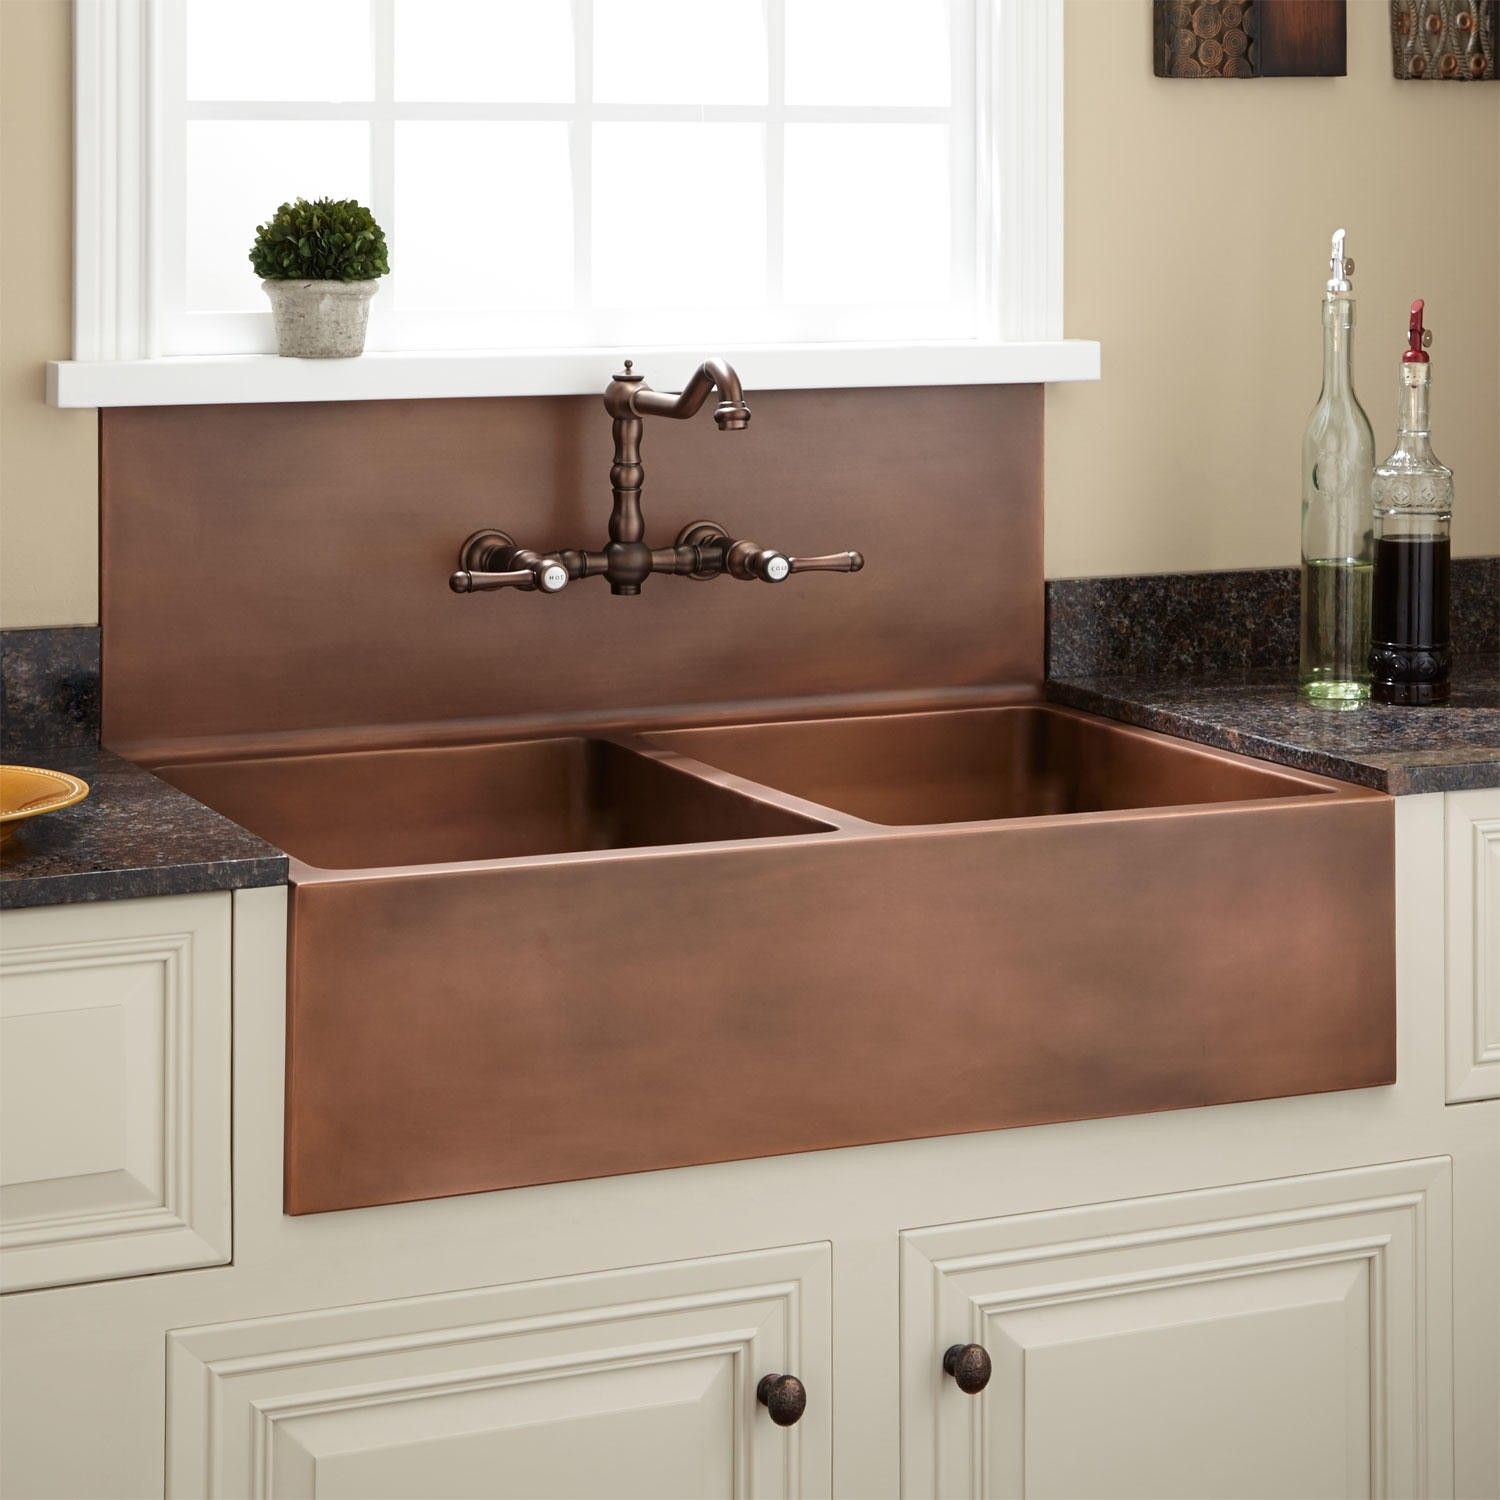 "36"" Christina Doublebowl Farmhouse Sink With High Backsplash Classy Kitchen Sink Backsplash Inspiration"